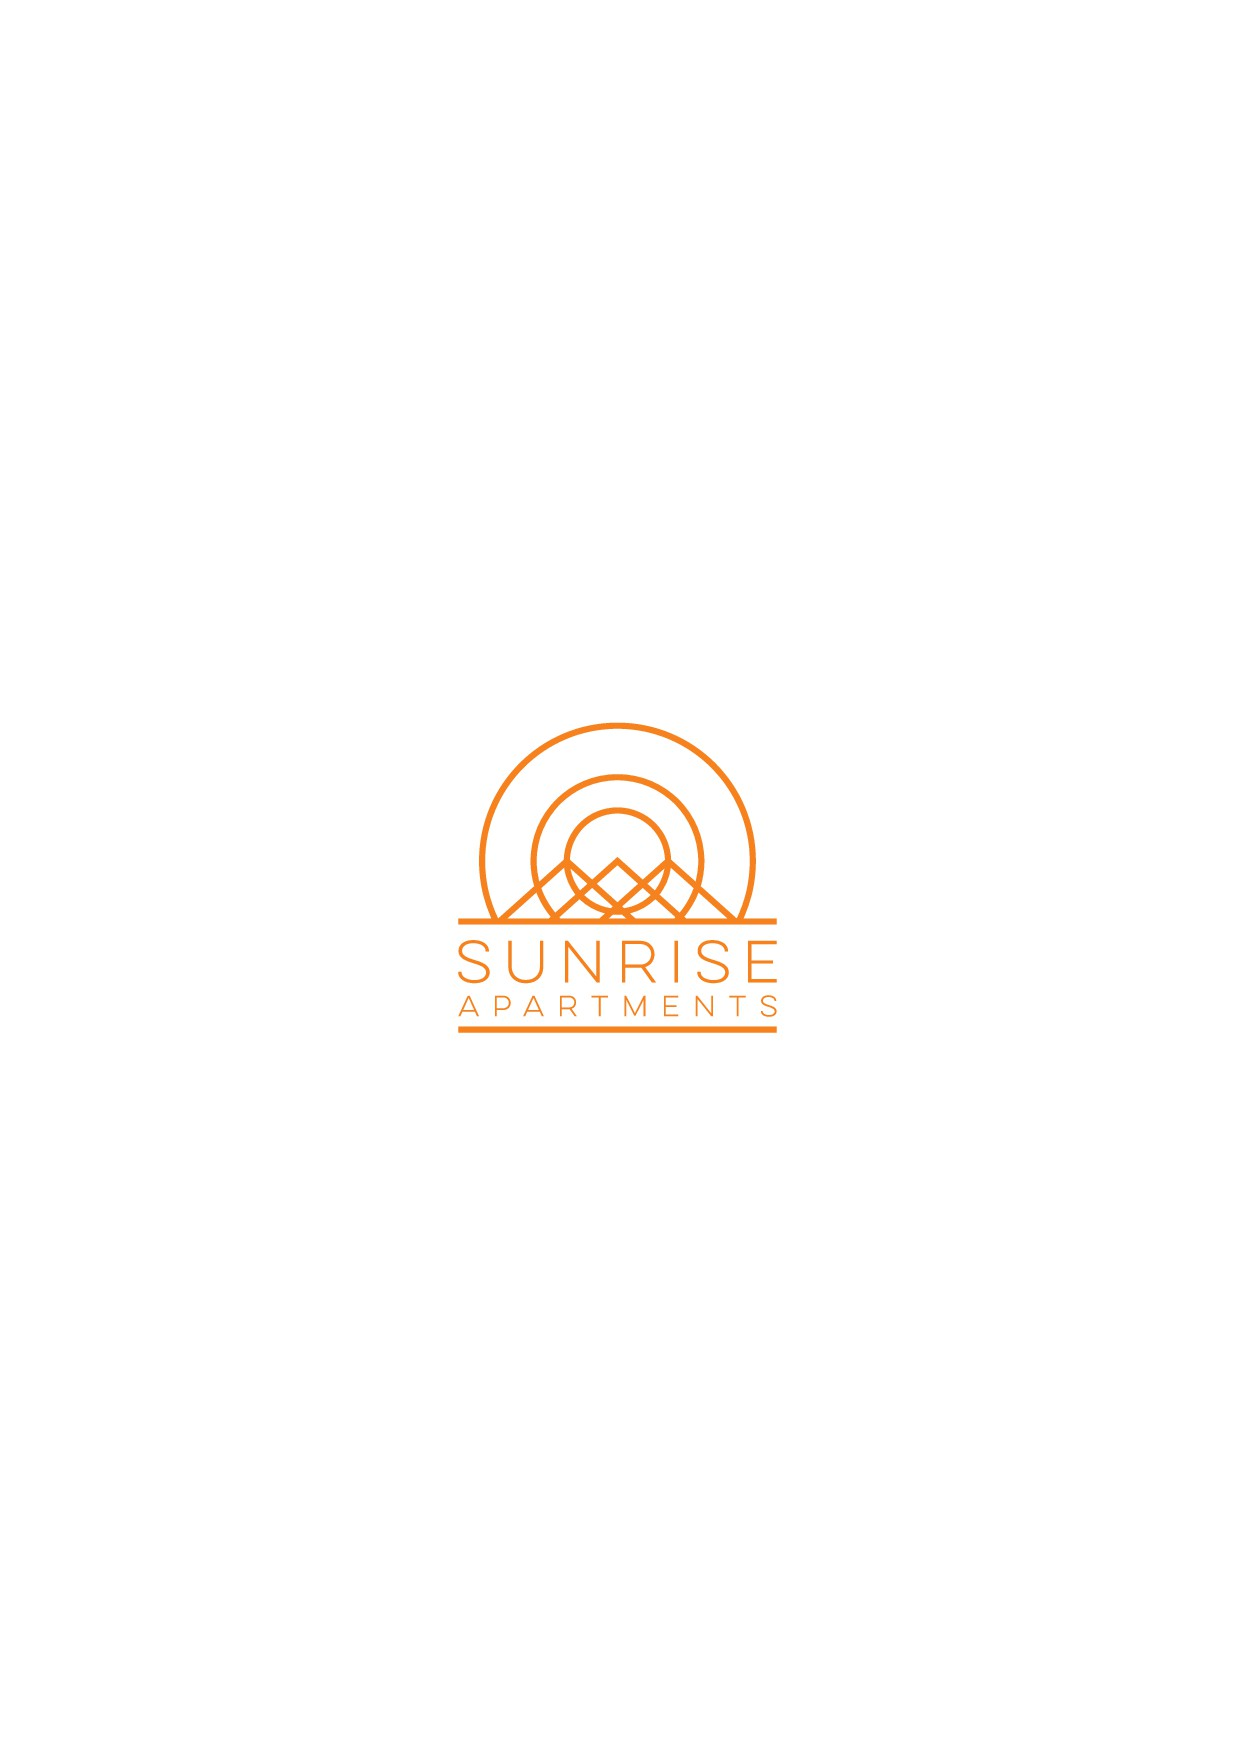 Transformational affordable housing company needs your logo design!